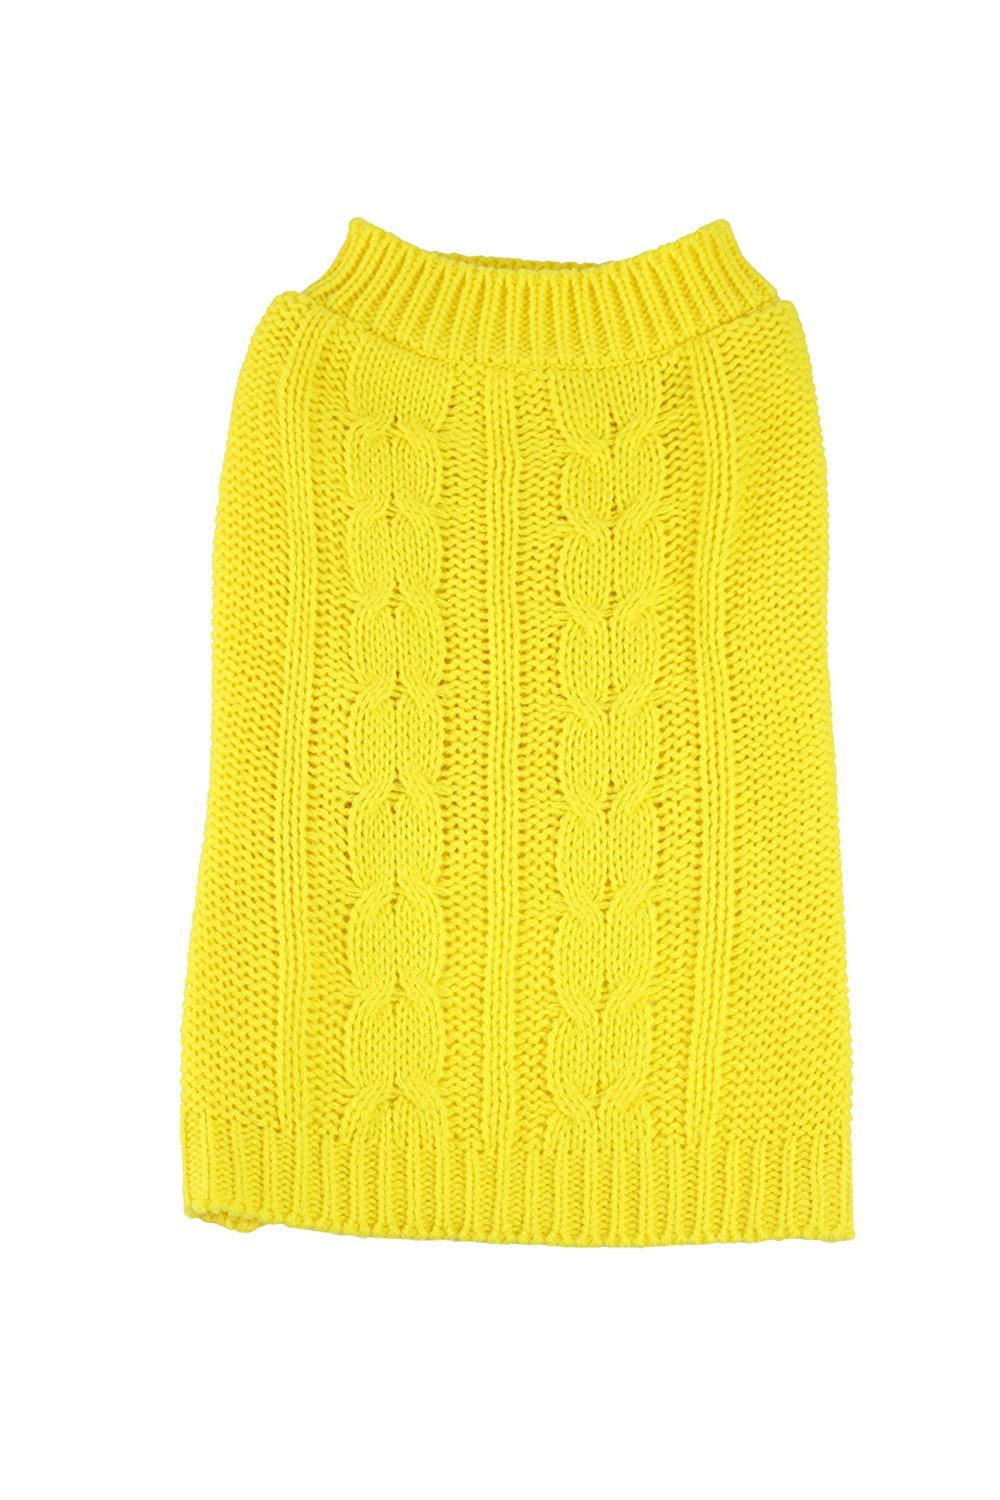 Cable Knit Dog Sweater by Midlee (X-Large, Yellow)